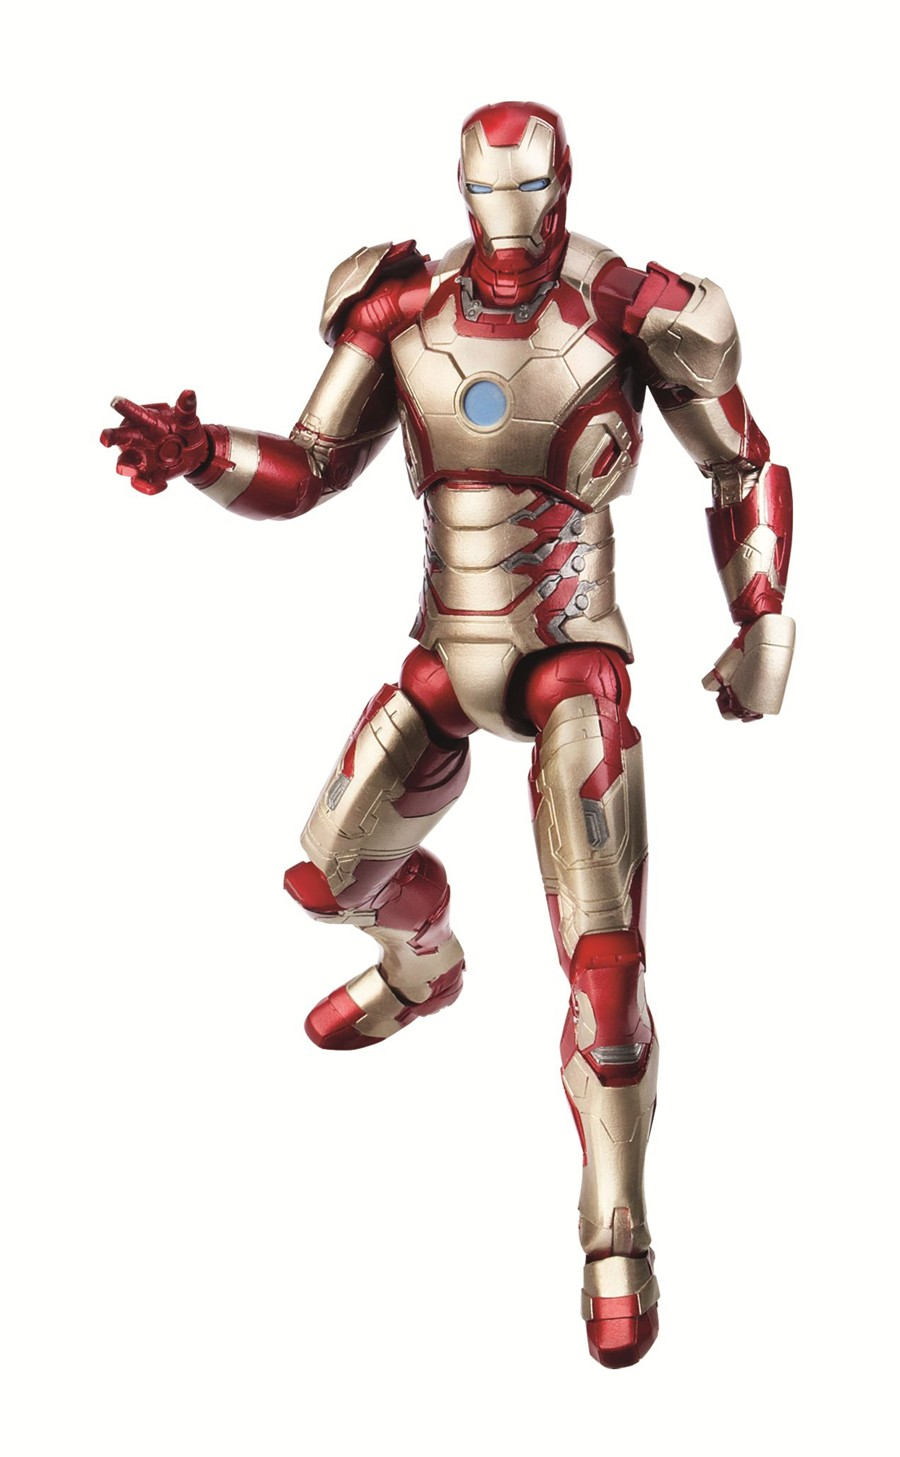 Marvel Legends Iron Man 3 Mark 42 • Toywiz and Toy Garden